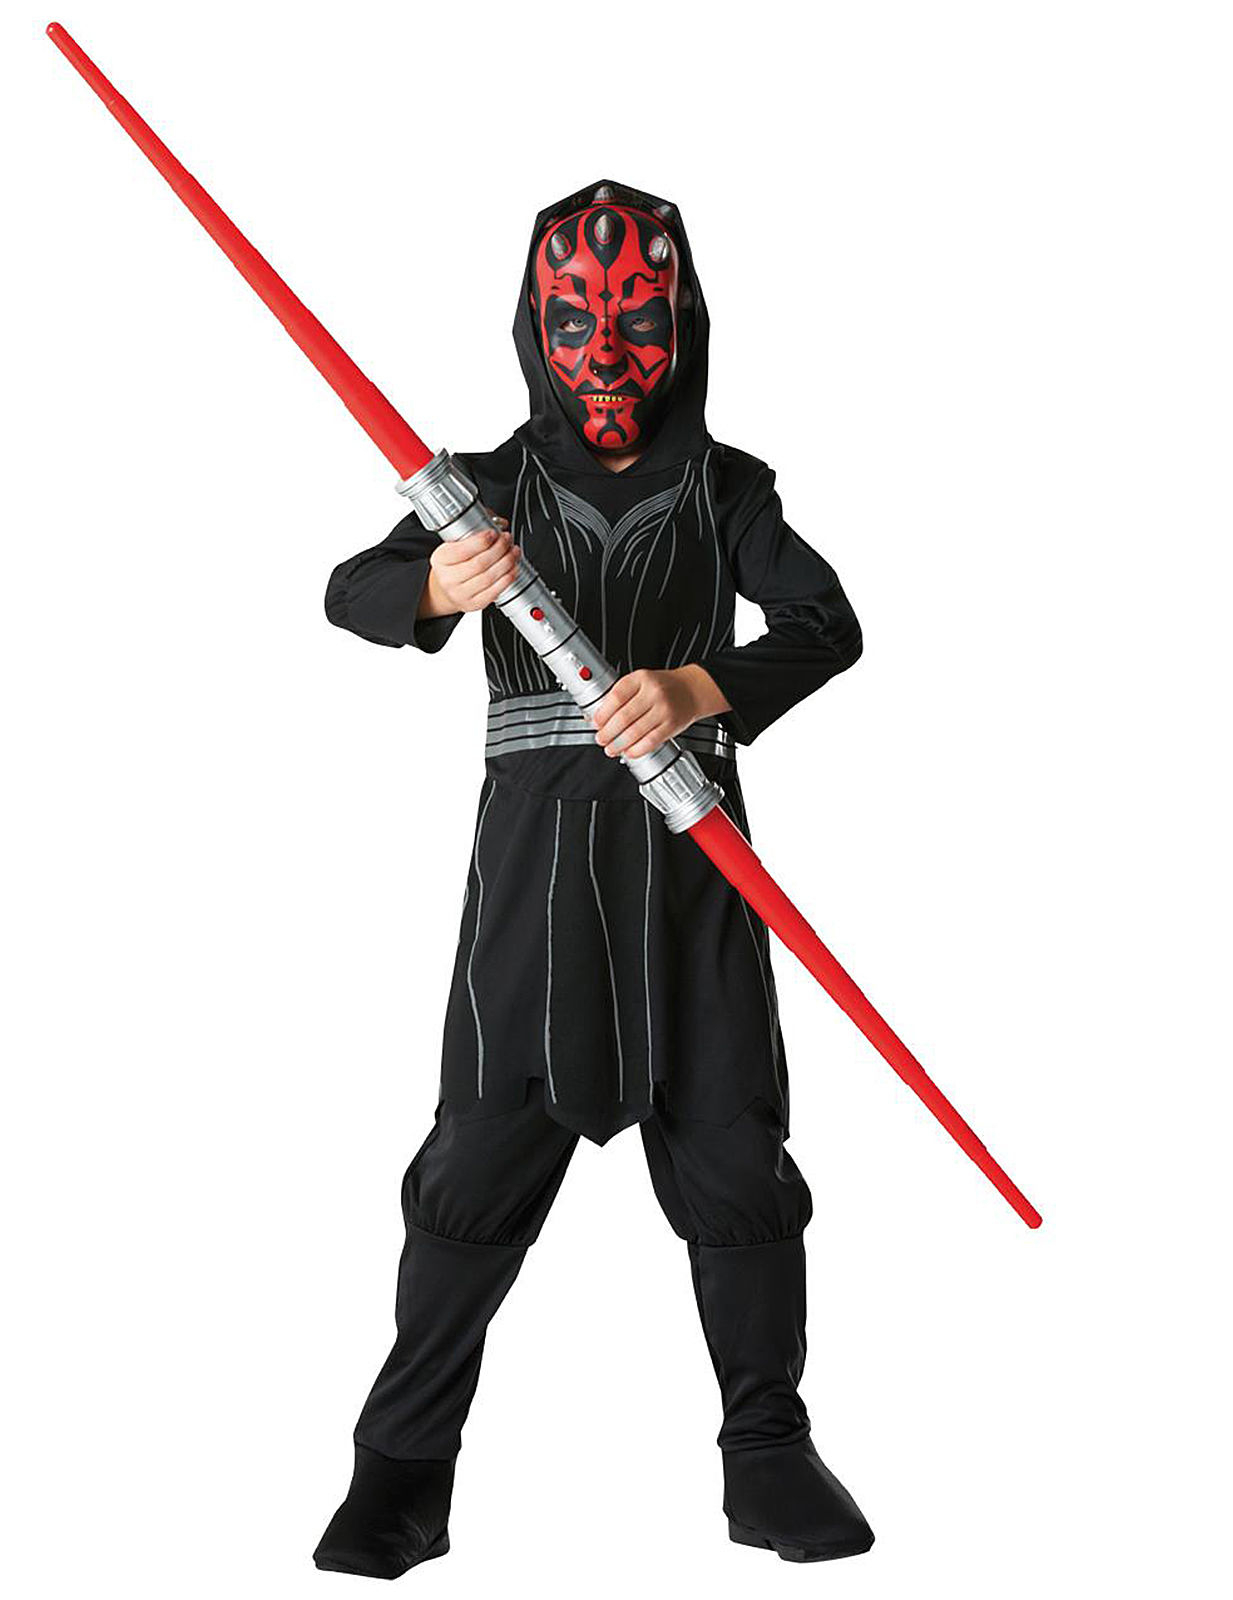 darth maul star wars kost m f r kinder kost me f r kinder und g nstige faschingskost me vegaoo. Black Bedroom Furniture Sets. Home Design Ideas